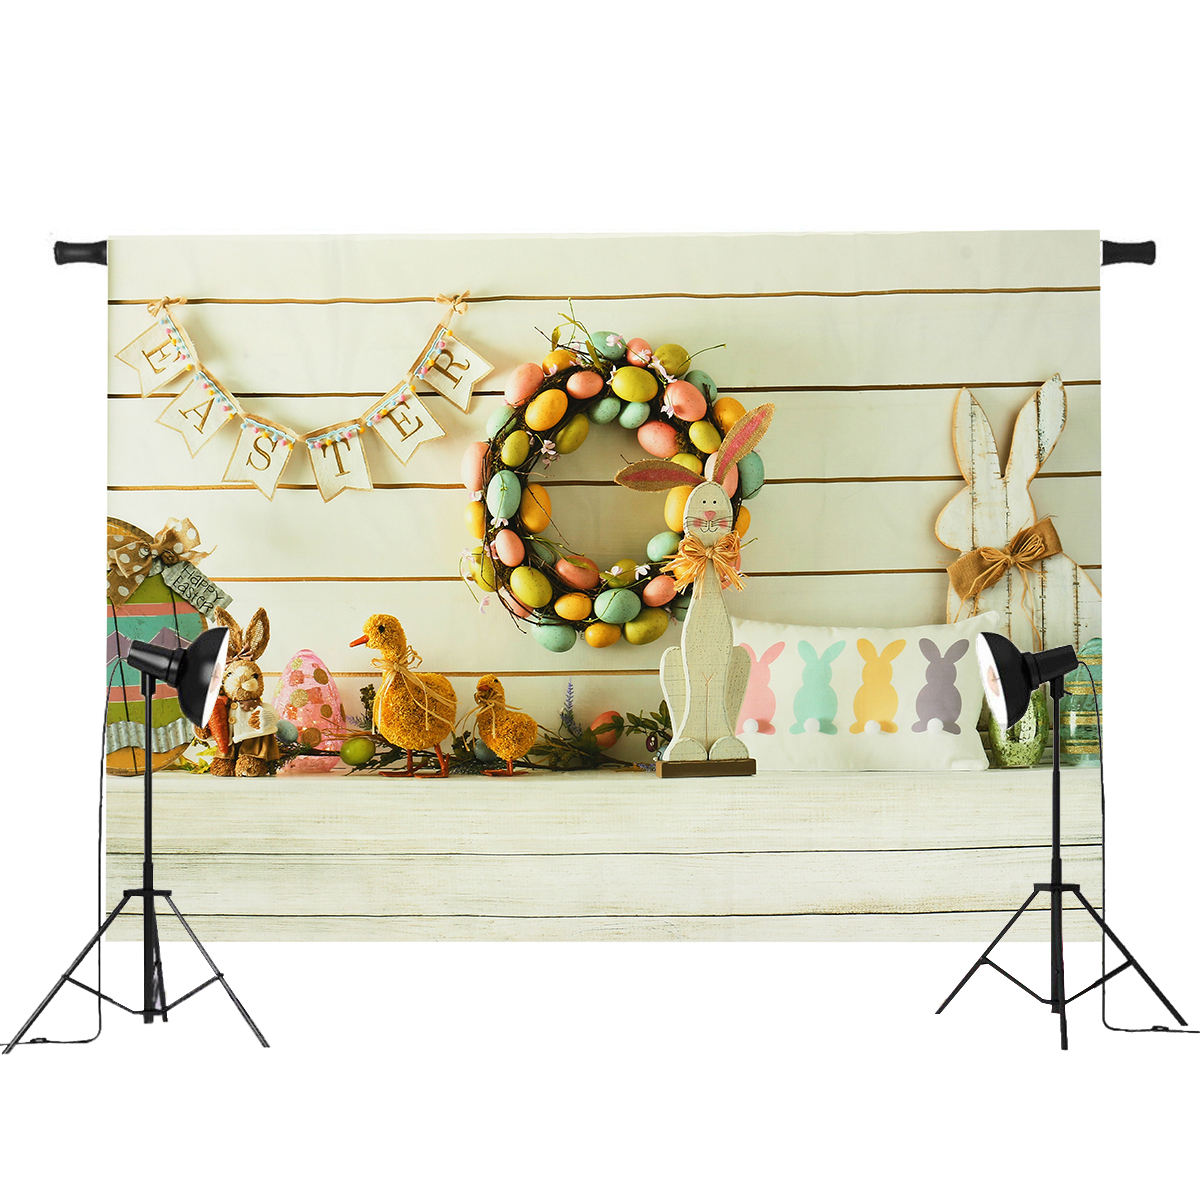 7x5ft/5x3ft Easter Duck Theme Thin Vinyl Photography Backdrop Background Studio Photo Prop